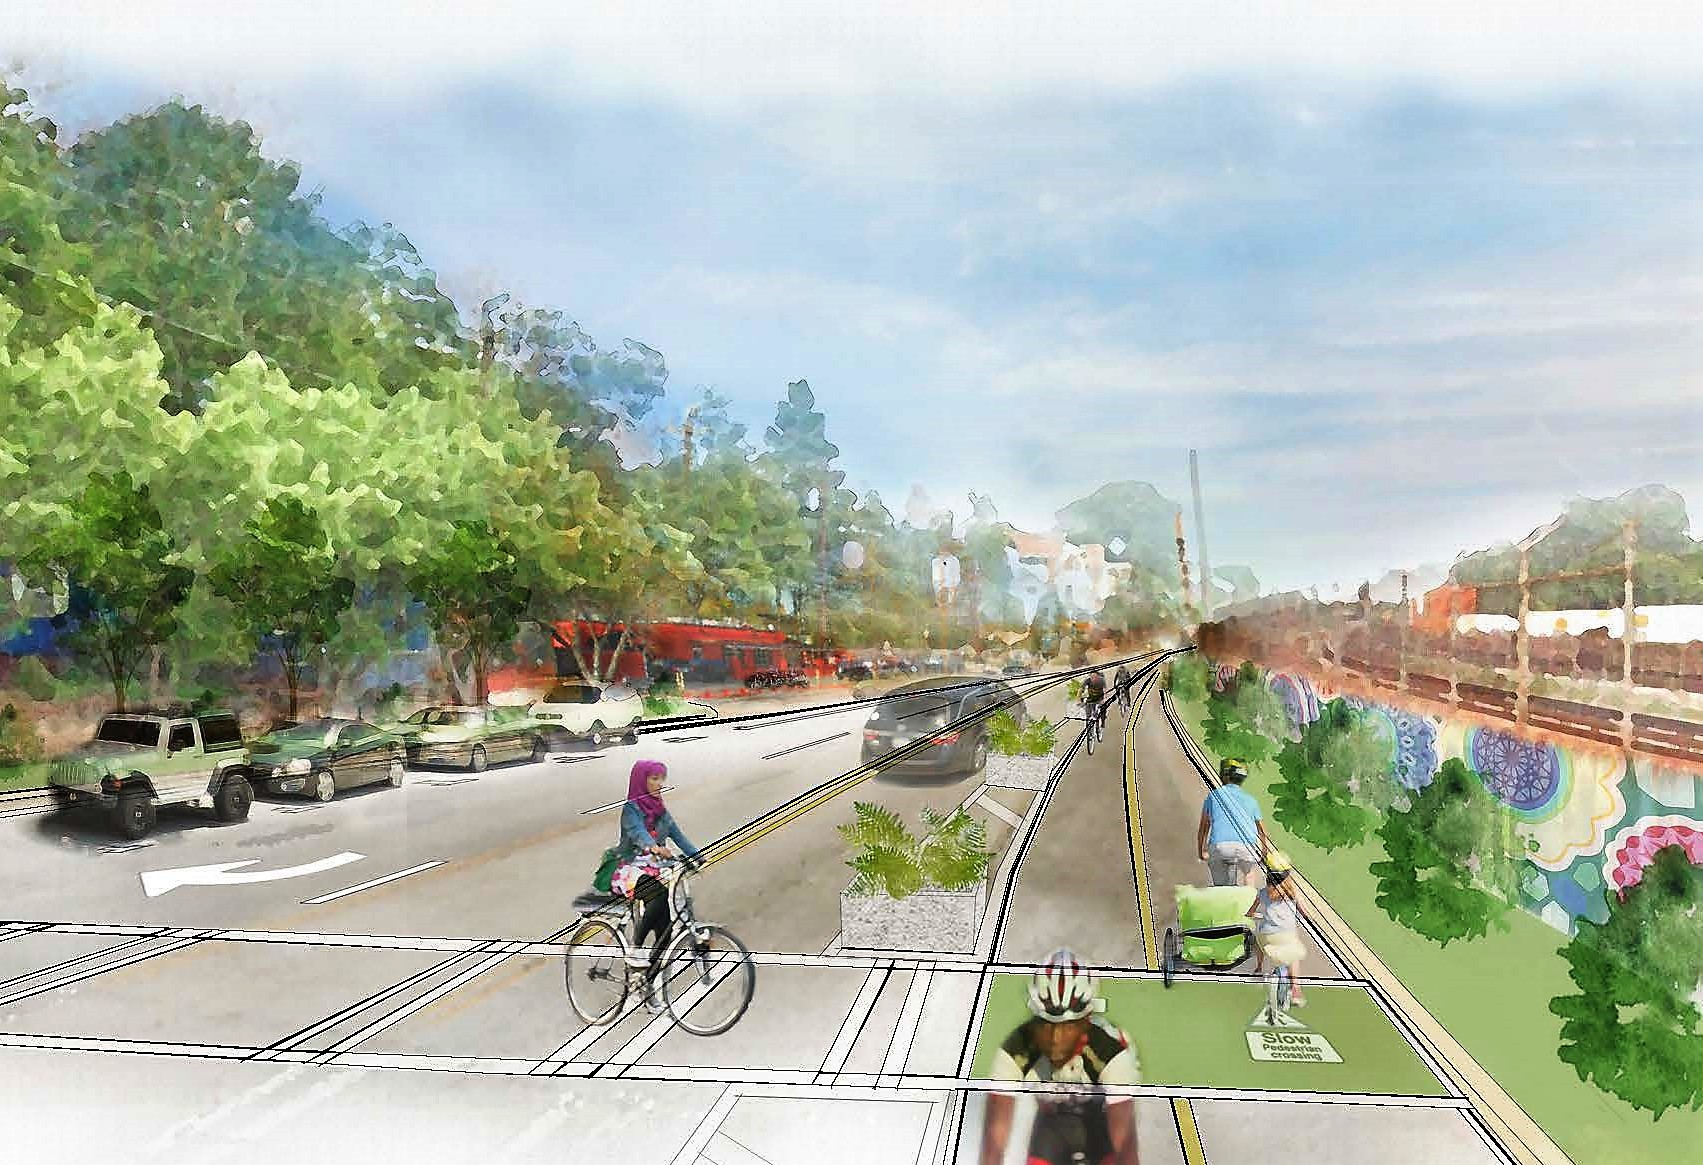 a rendering shows a possible reworking of DeKalb Avenue.